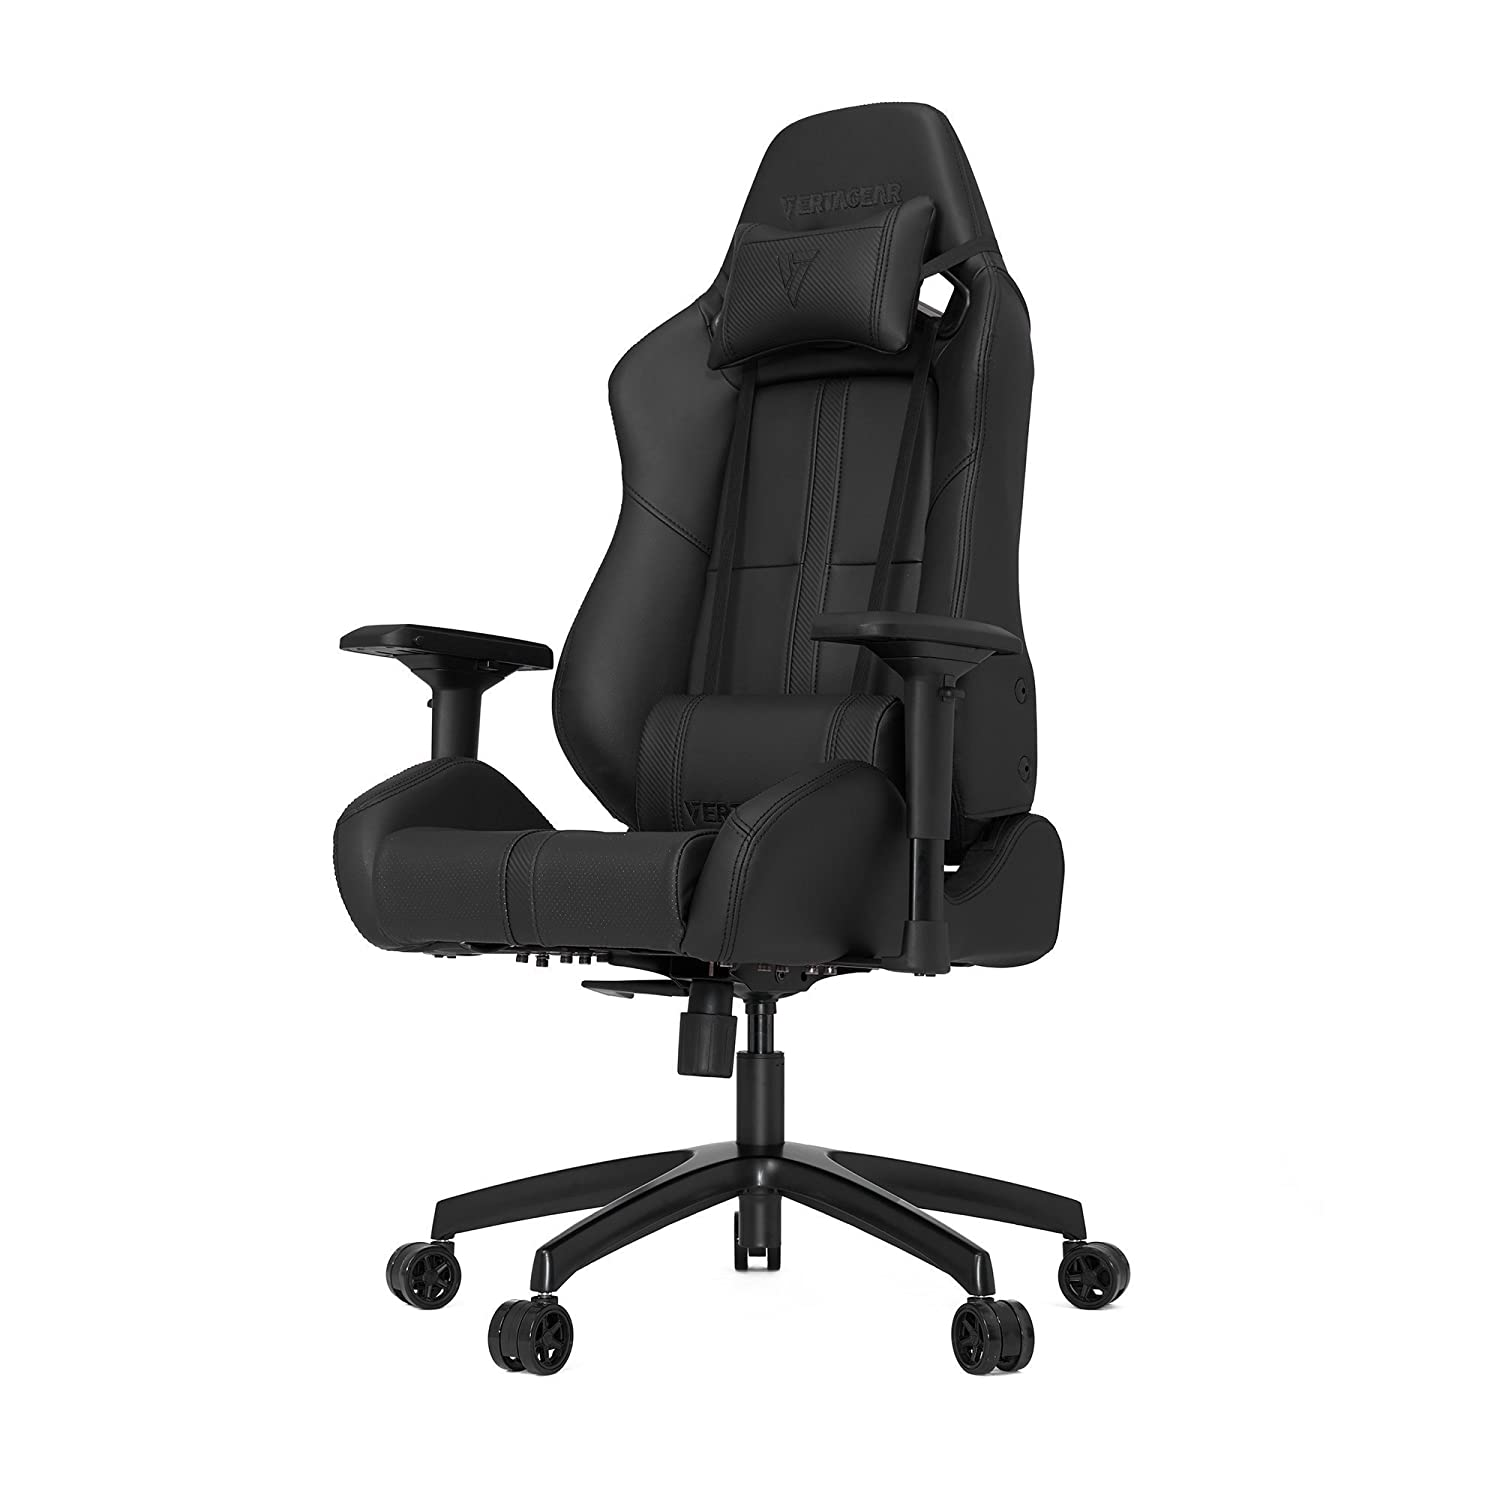 BPQJKFC amazon kitchen chairs Amazon com Vertagear S Line SL Racing Series Gaming Chair Carbon Black Rev 2 Kitchen Dining